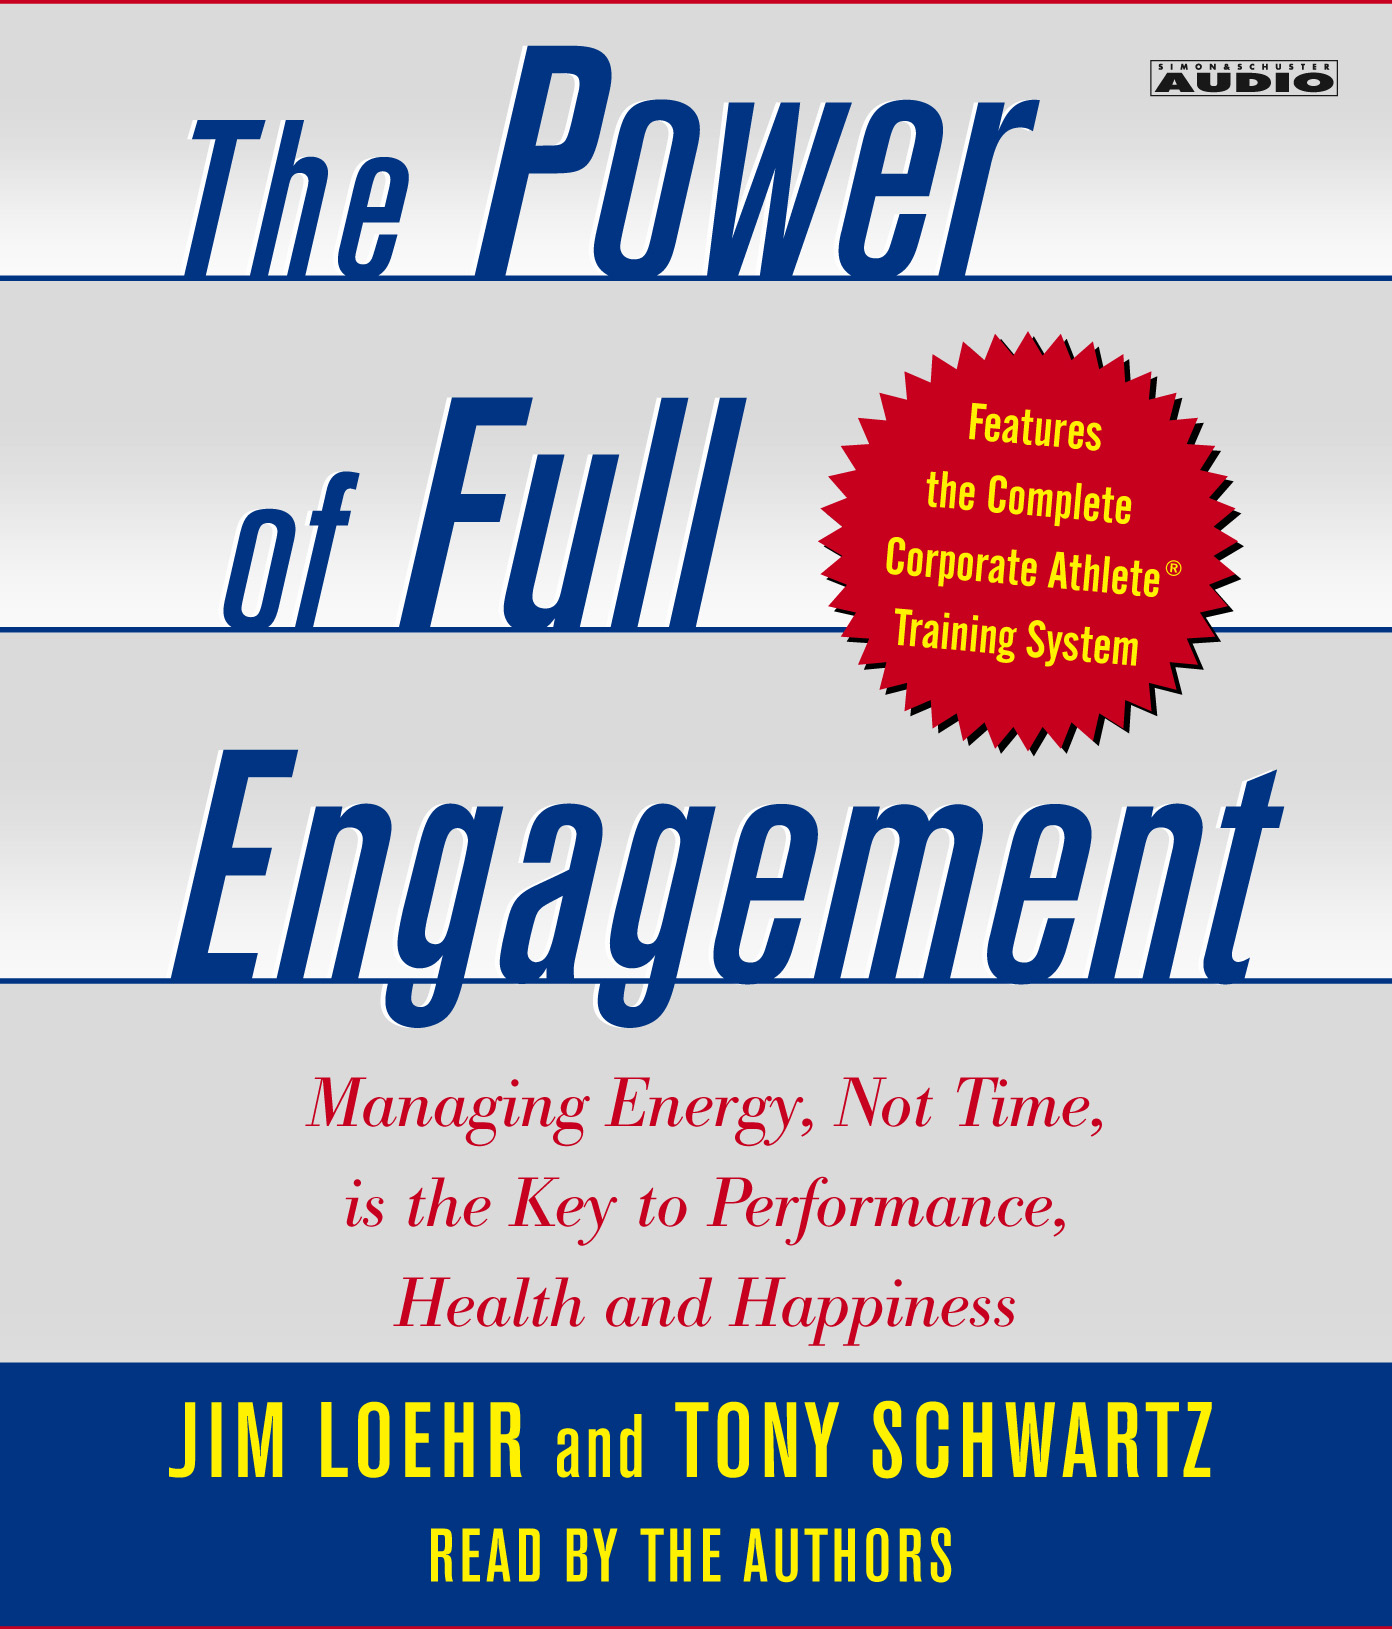 Tony schwartz official publisher page simon schuster uk book cover image jpg the power of full engagement fandeluxe Choice Image